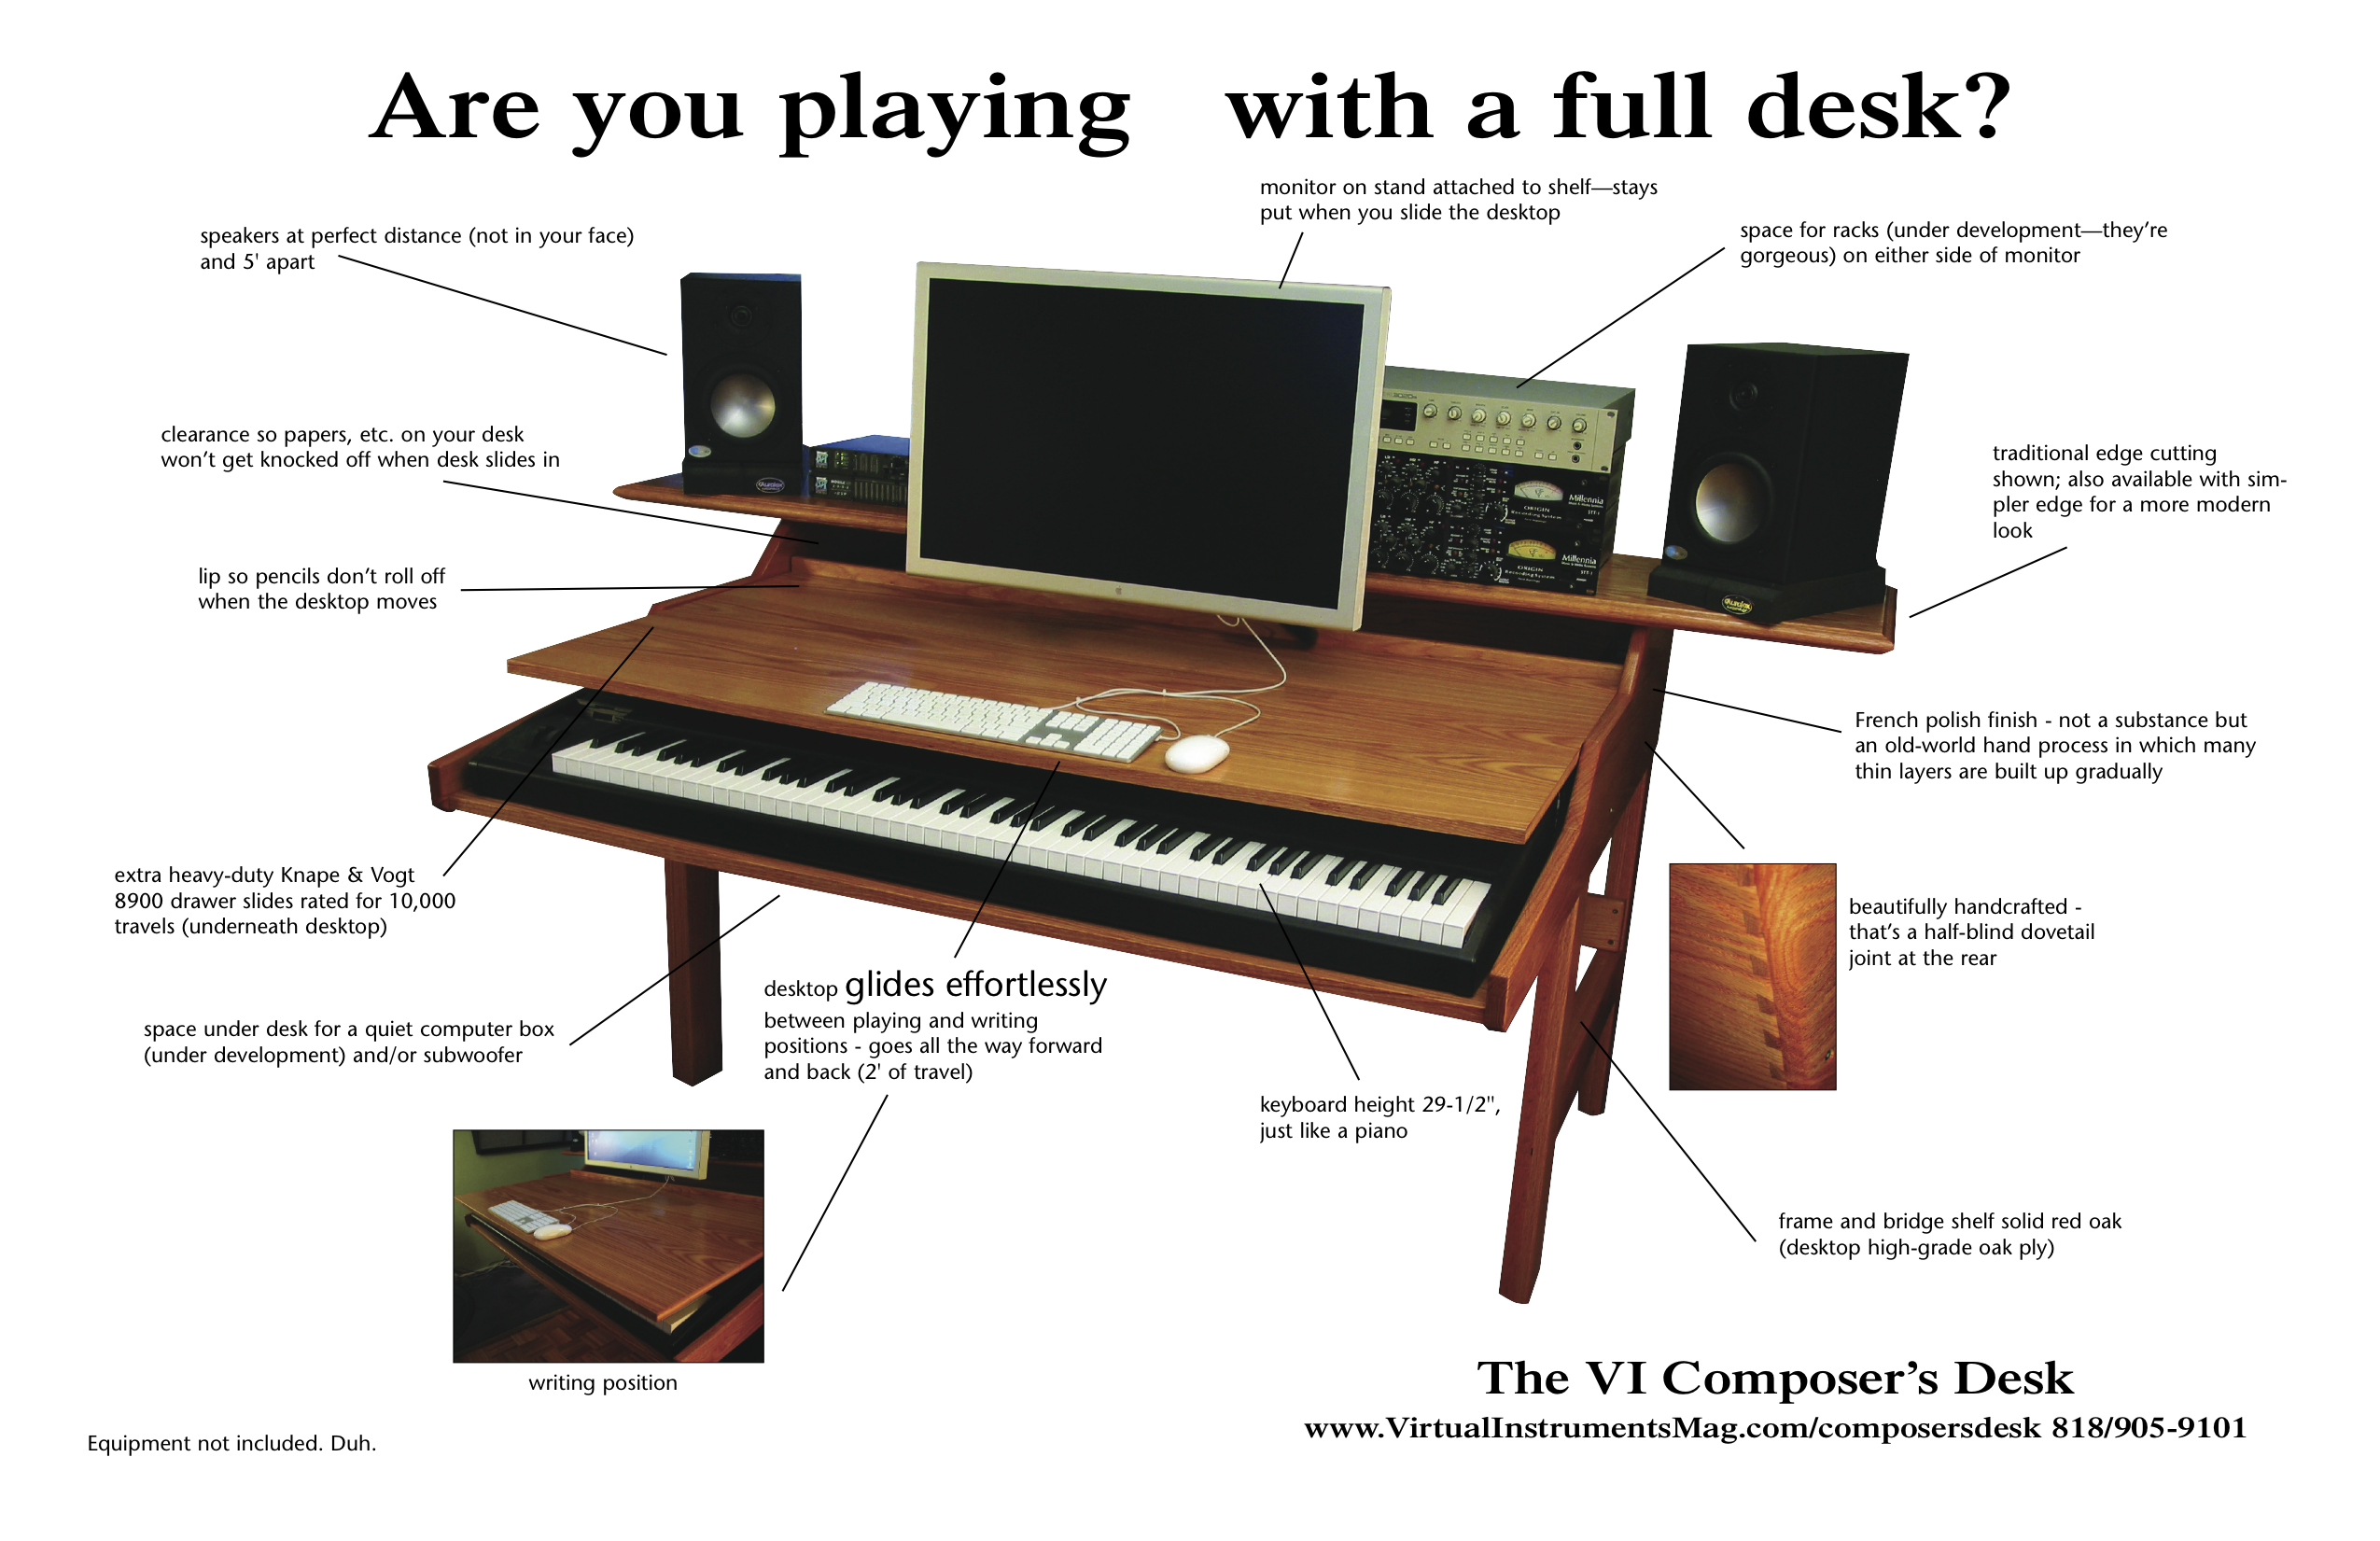 The VI poser s Desk When you want to lay down some keys you don